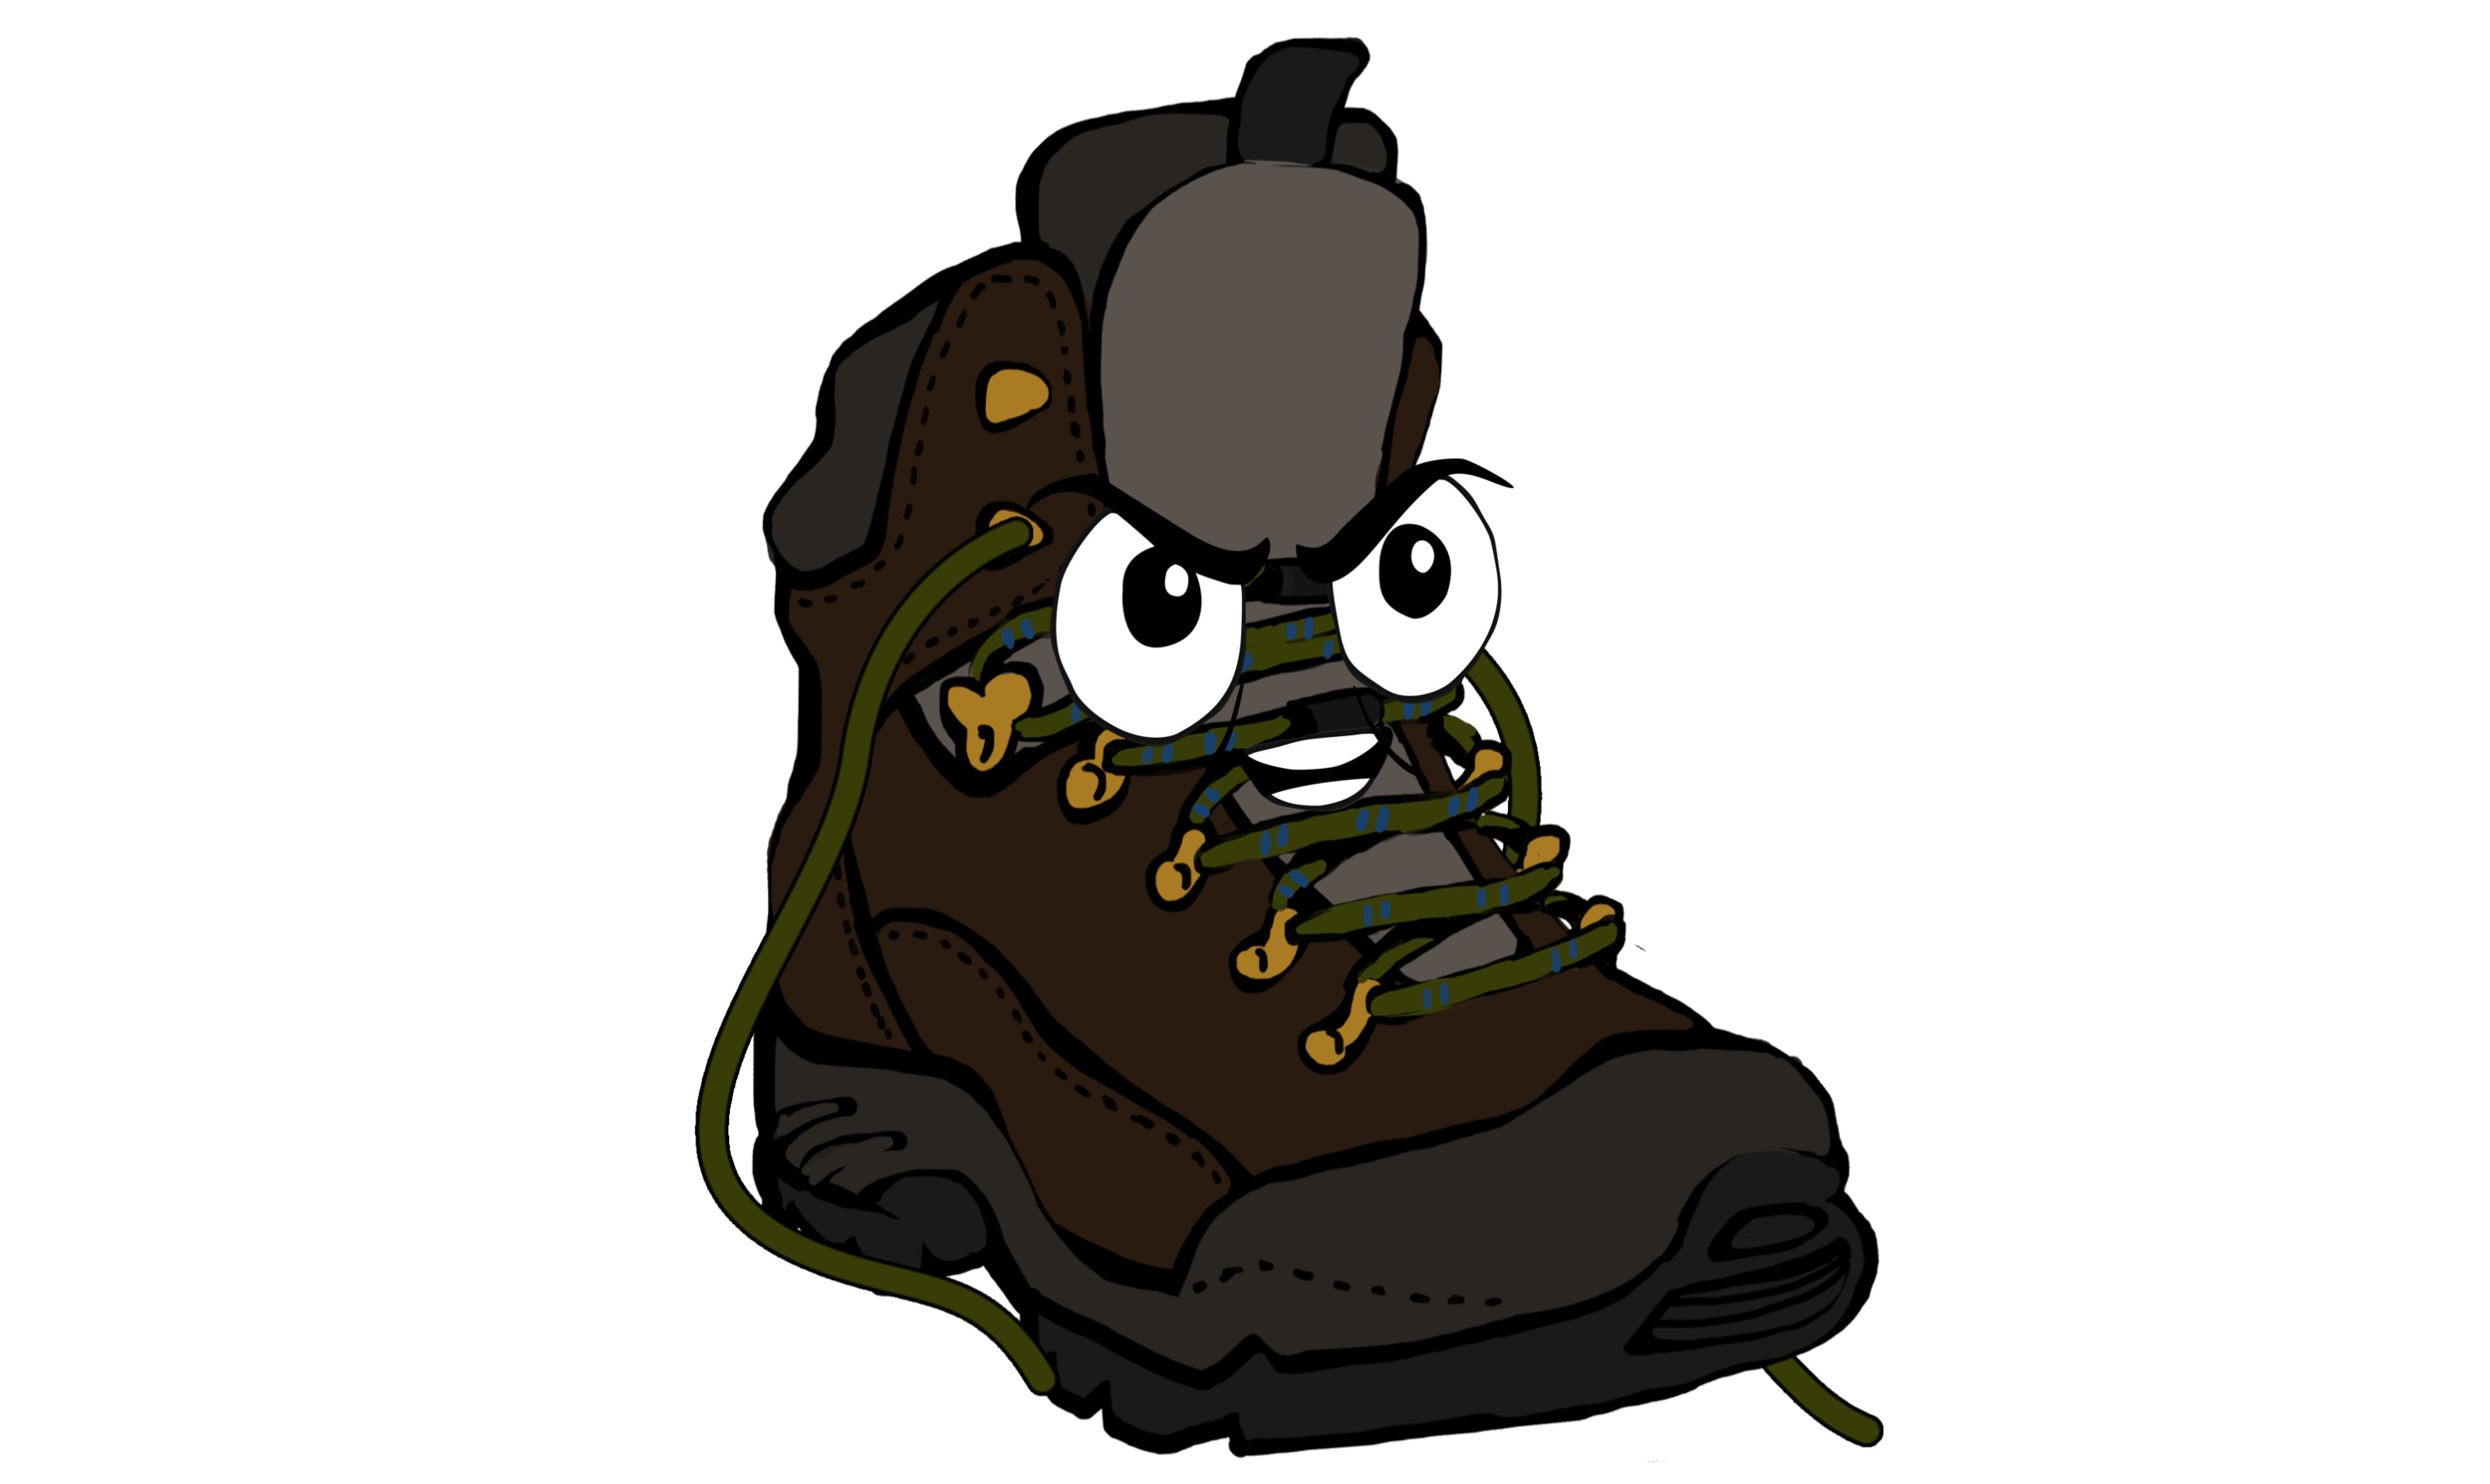 Hiker - Tough as old boots and as tough as they come, Hiker is the self-proclaimed leader of a group of solitary footwear that Deano stumbles across on his 'adventures'. Full of grip and power he maybe, but is there some vulnerability within Hiker?